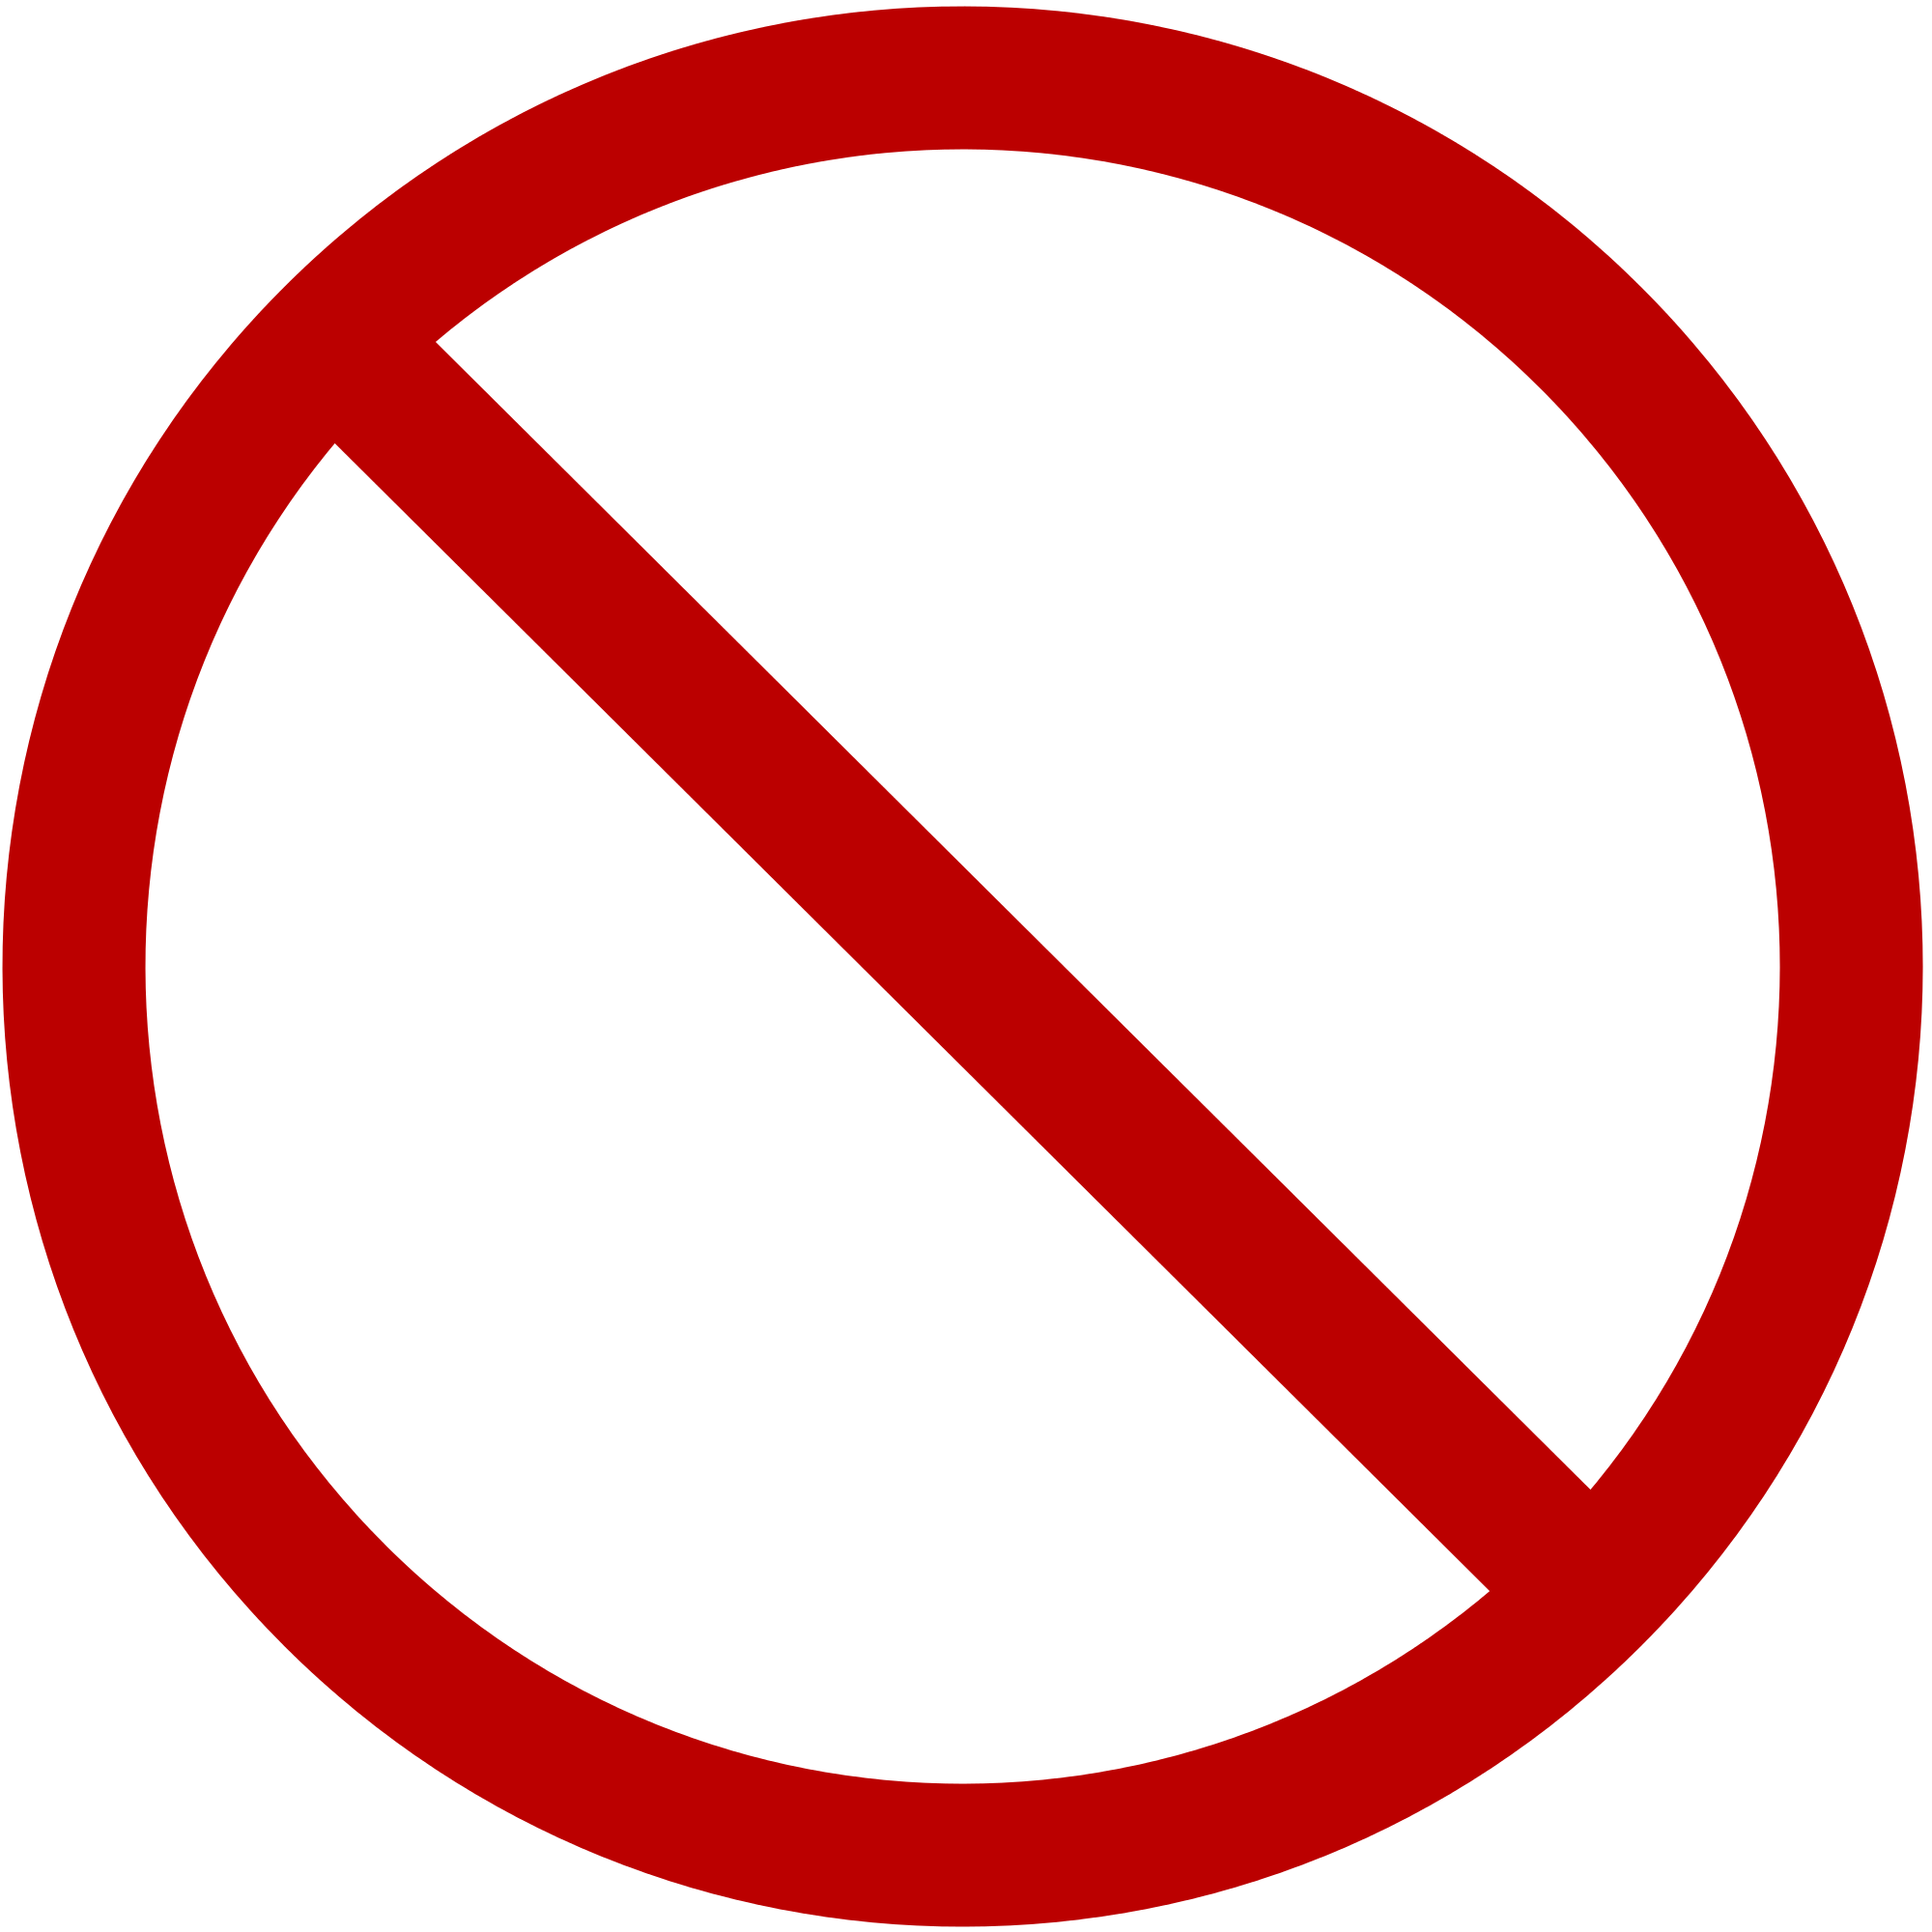 Stop symbol png. File svg wikimedia commons